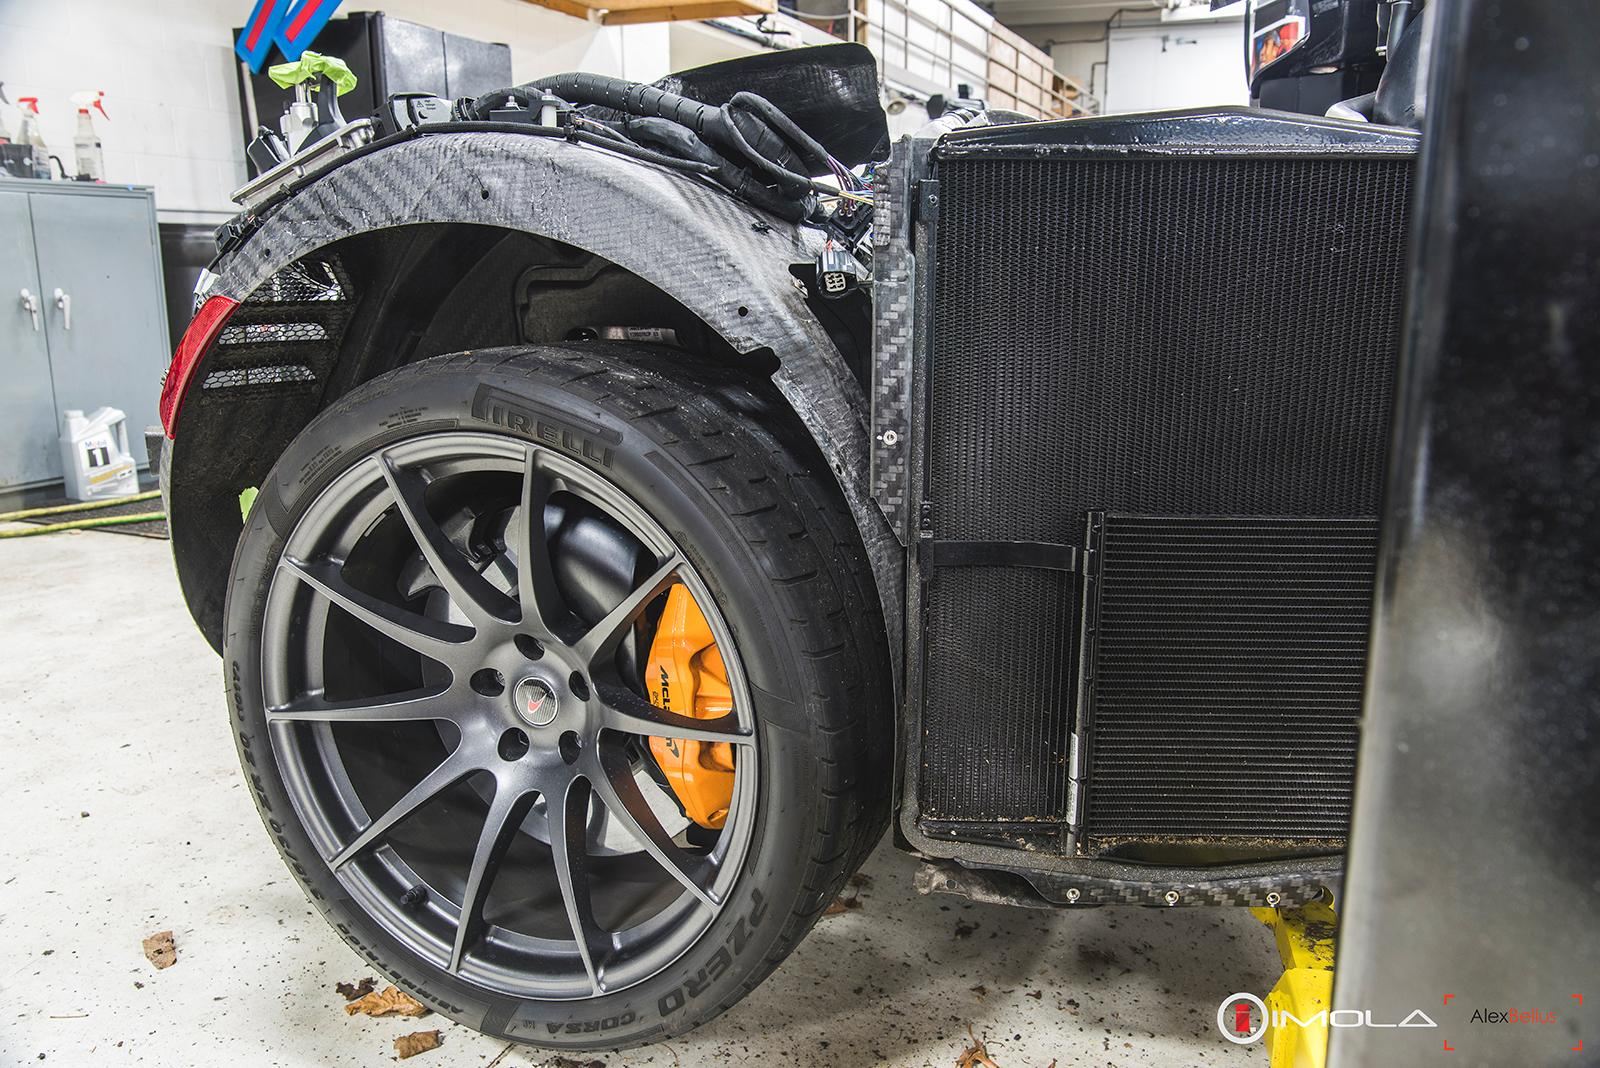 Mclaren P1 Cost >> The Mclaren P1 stripped down- for a tail light change ...